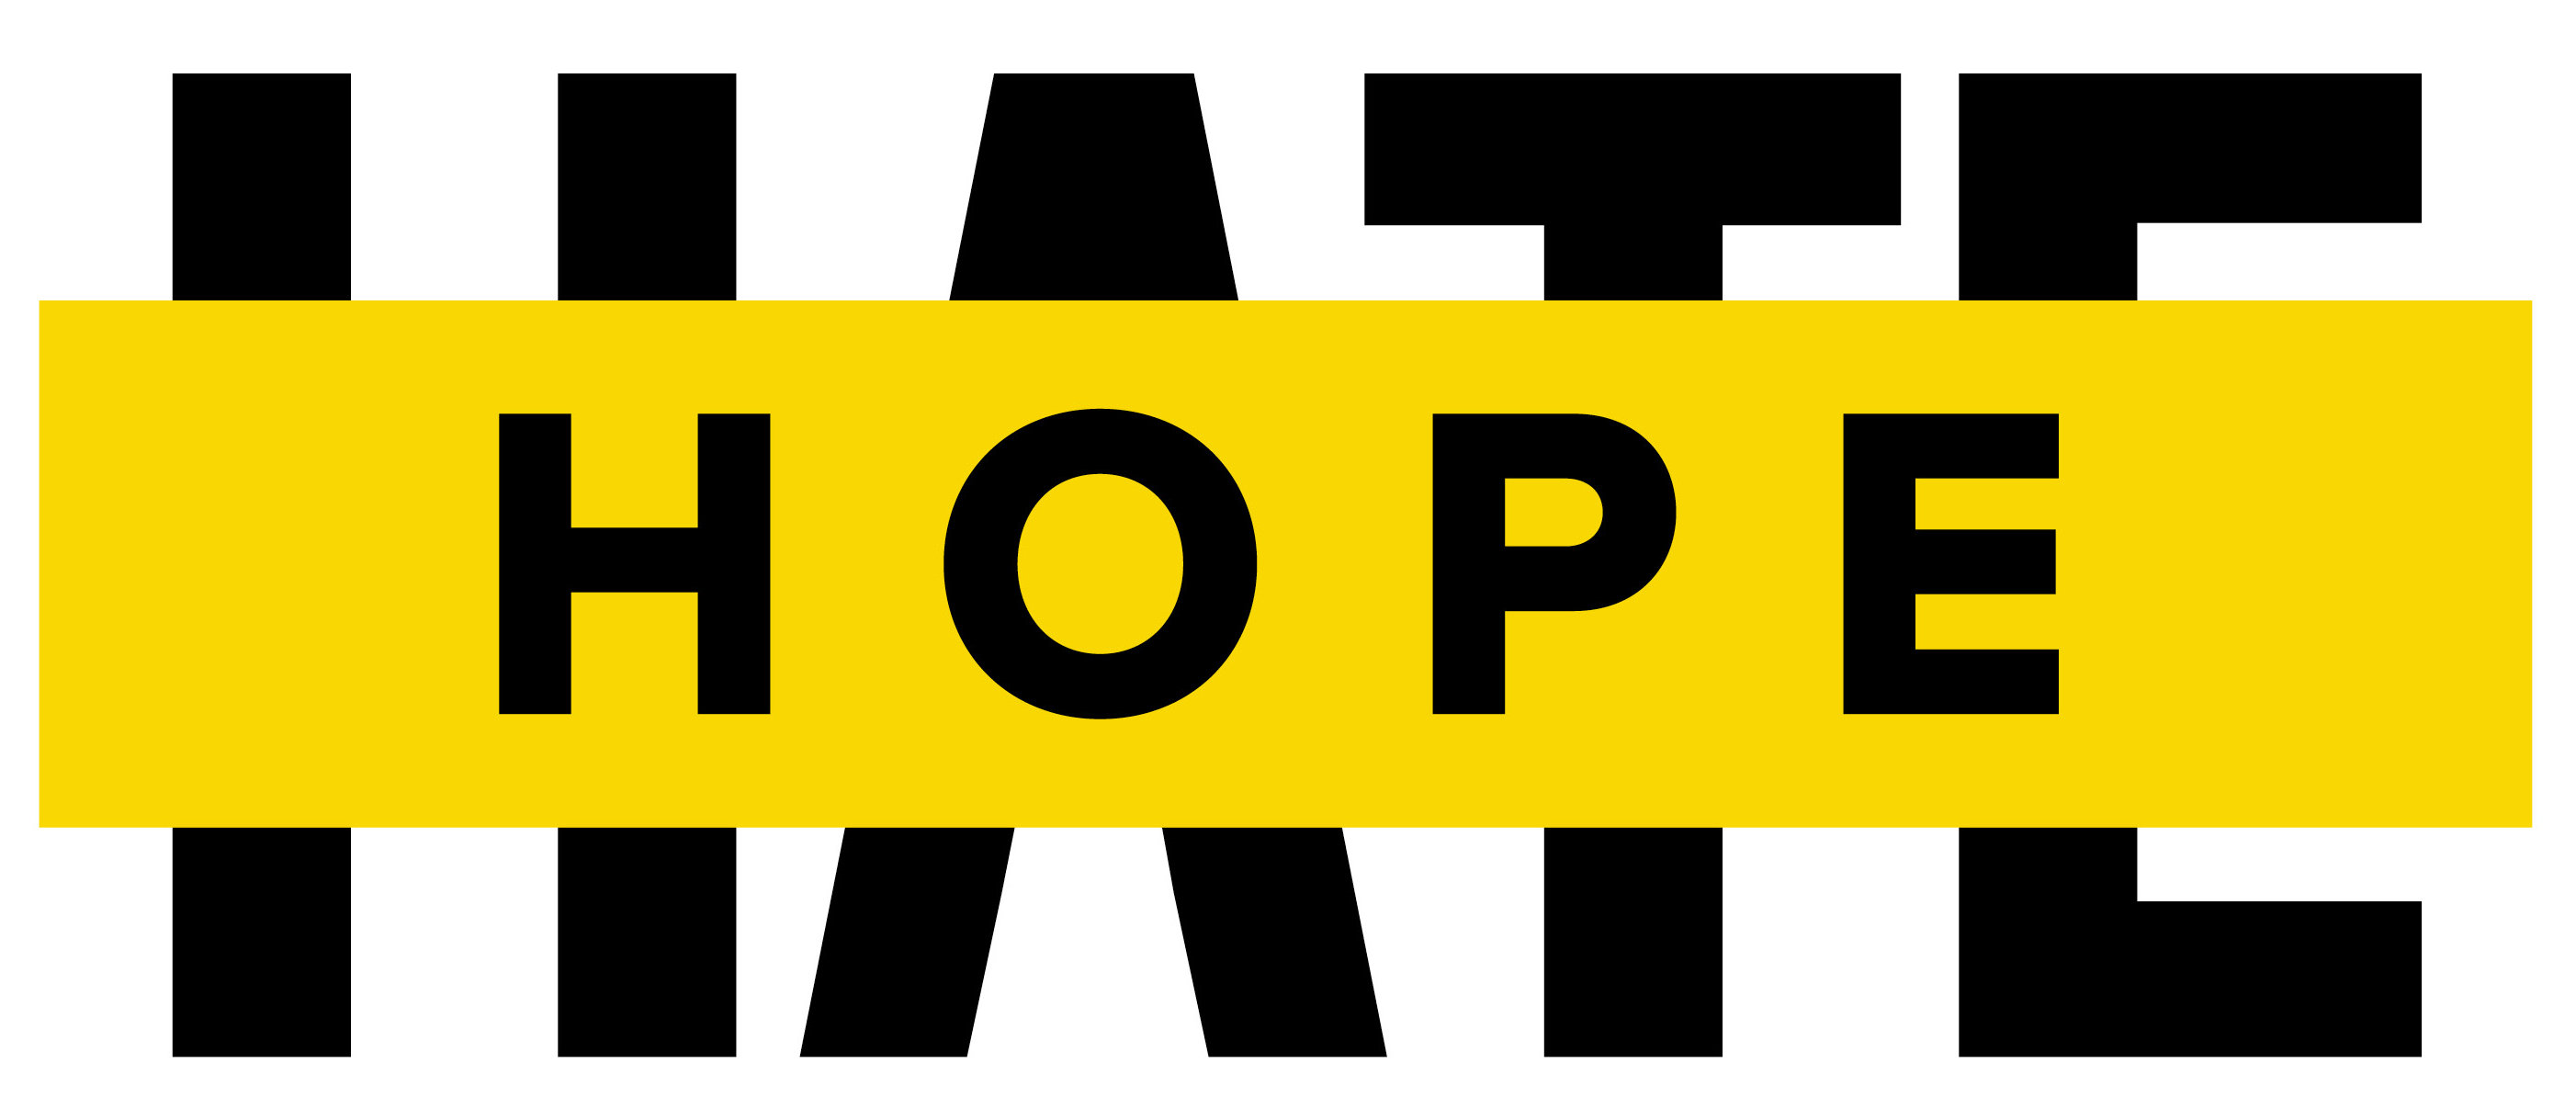 EHope Not Hate